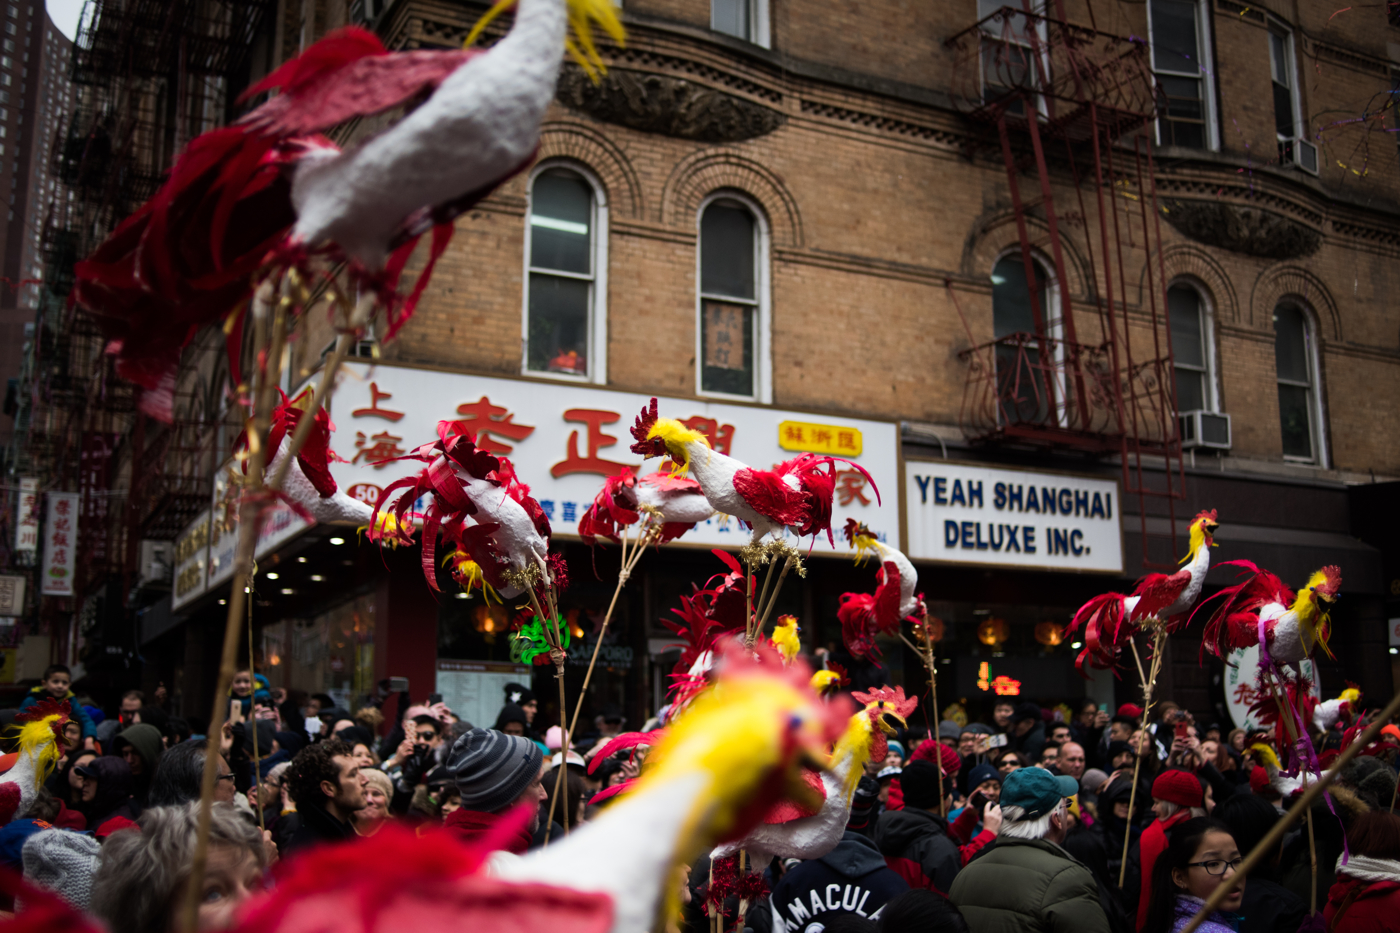 People from a group of families with Chinese children carry decorative roosters during the Chinese New Year Parade in the New York's Chinatown neighborhood.